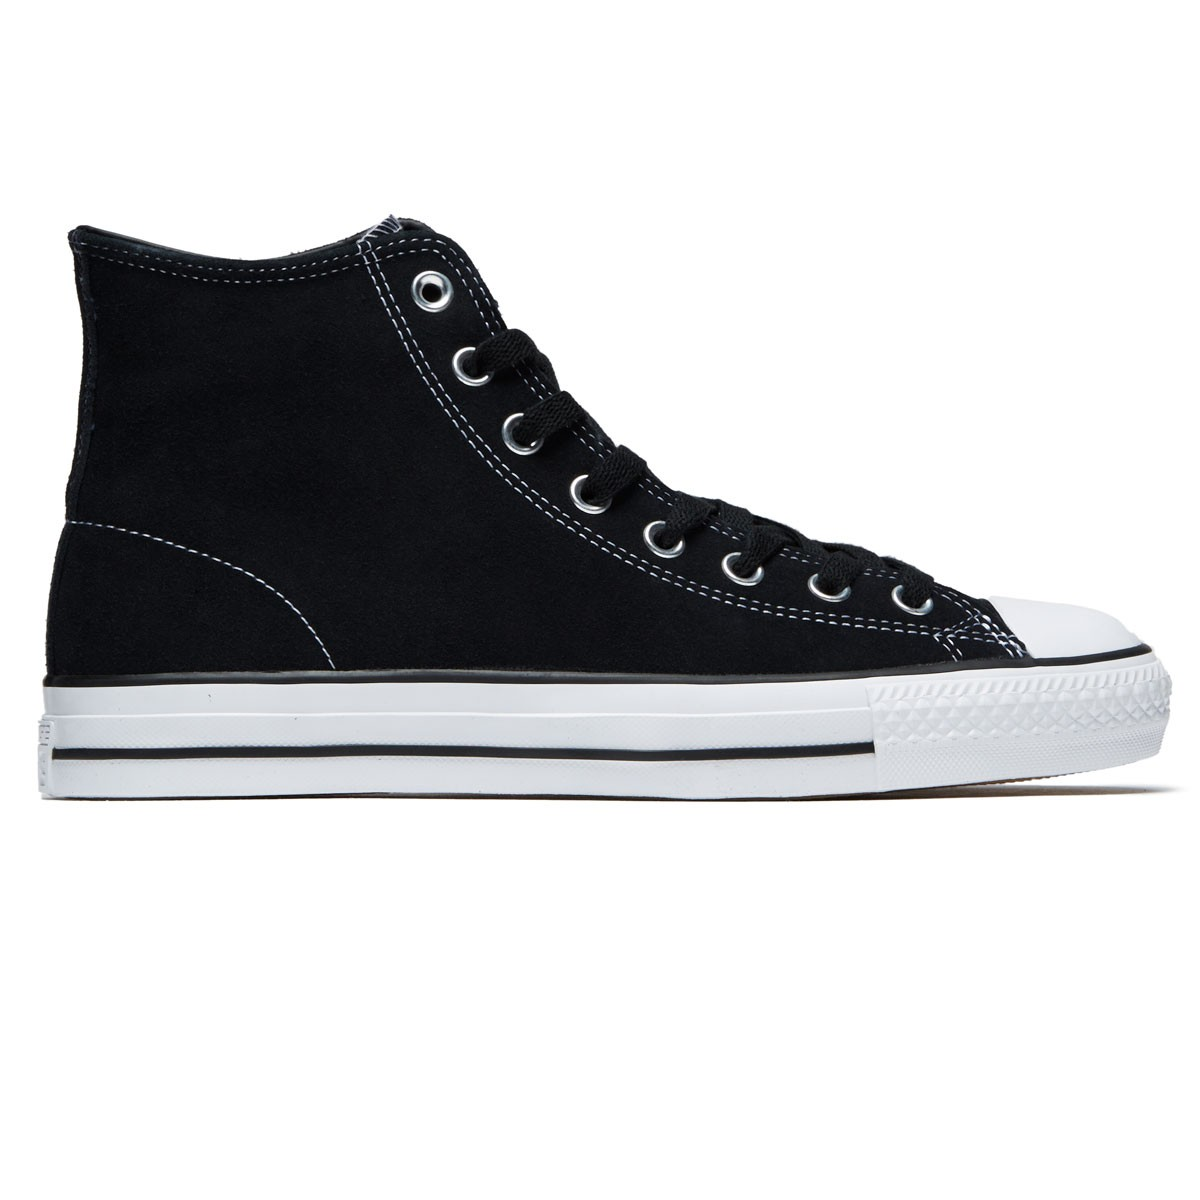 Converse Zoom Air CTAS Pro Hi Shoes - Black Black White 4d6baddcf